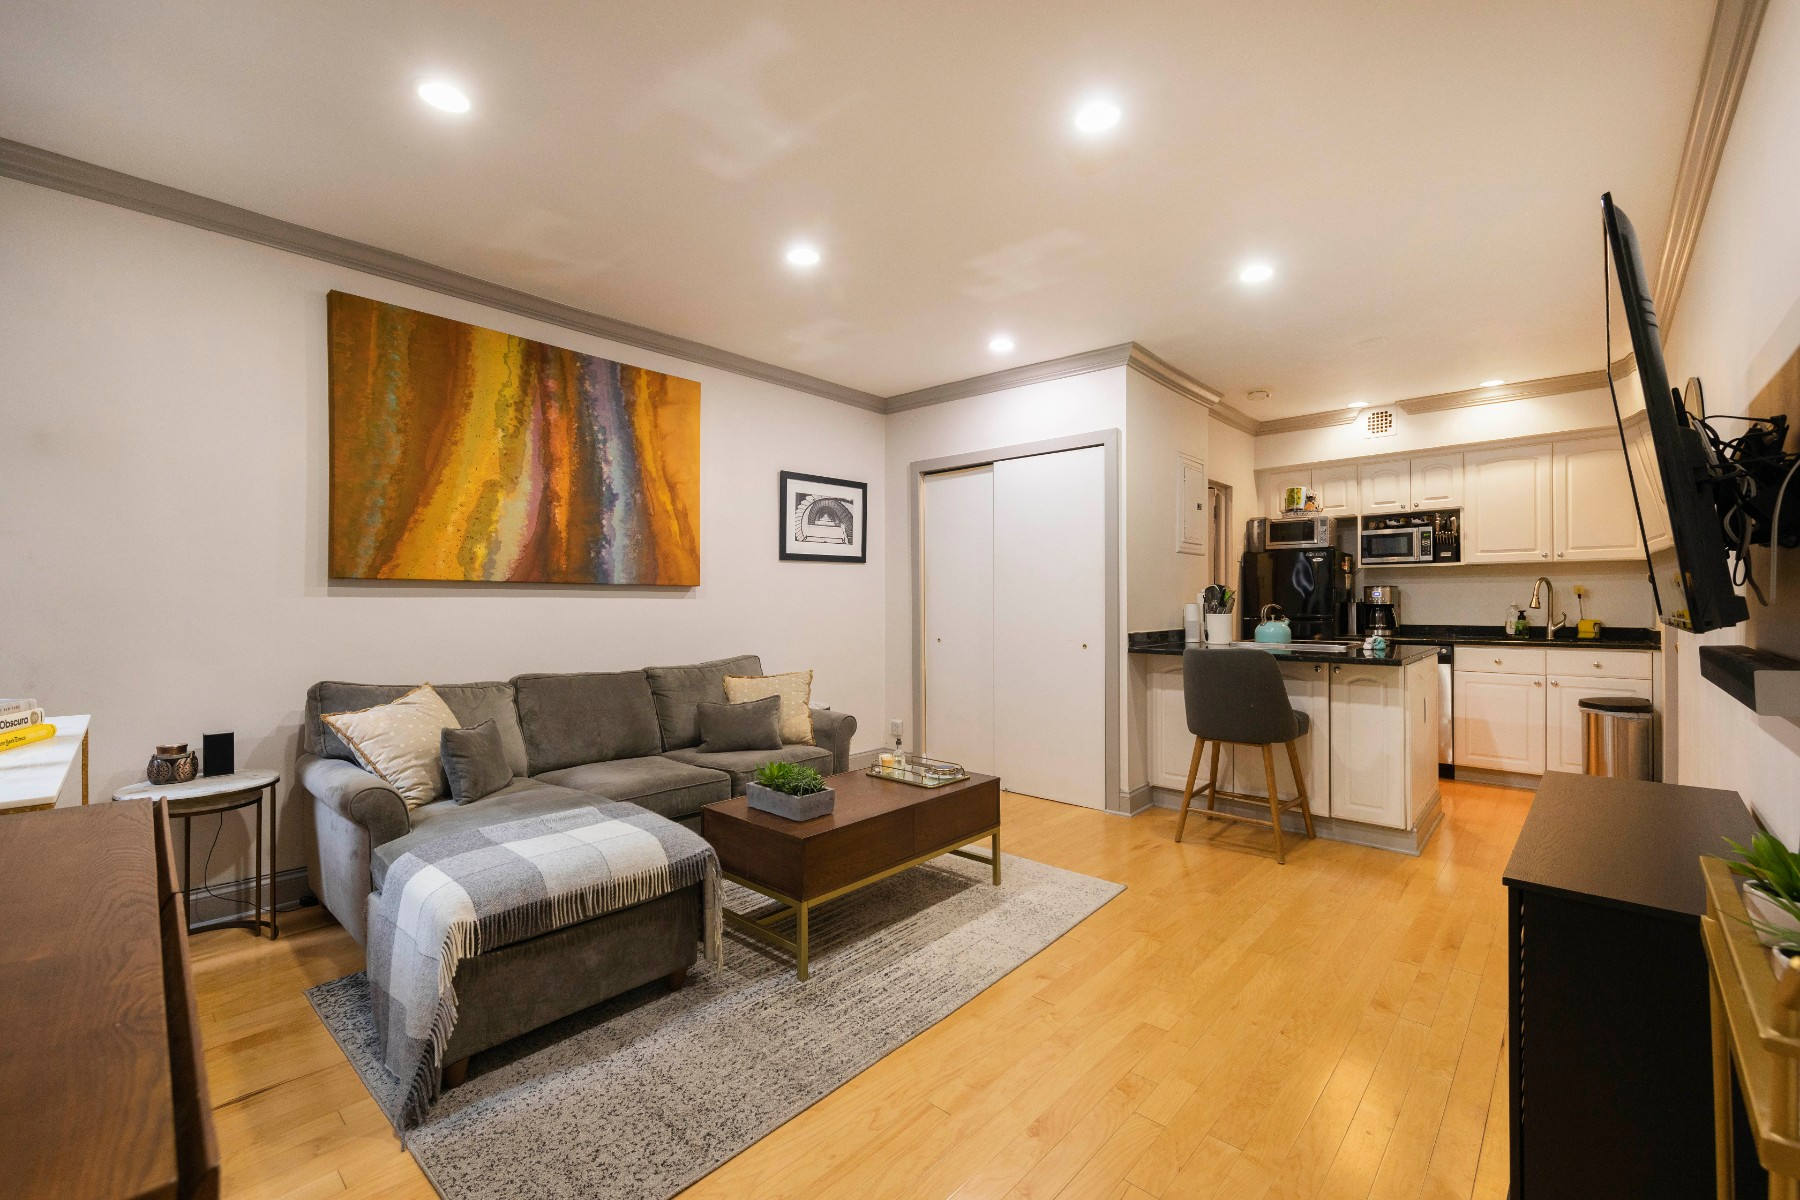 Apartment for sale at 82 Irving Place, Apt 2b